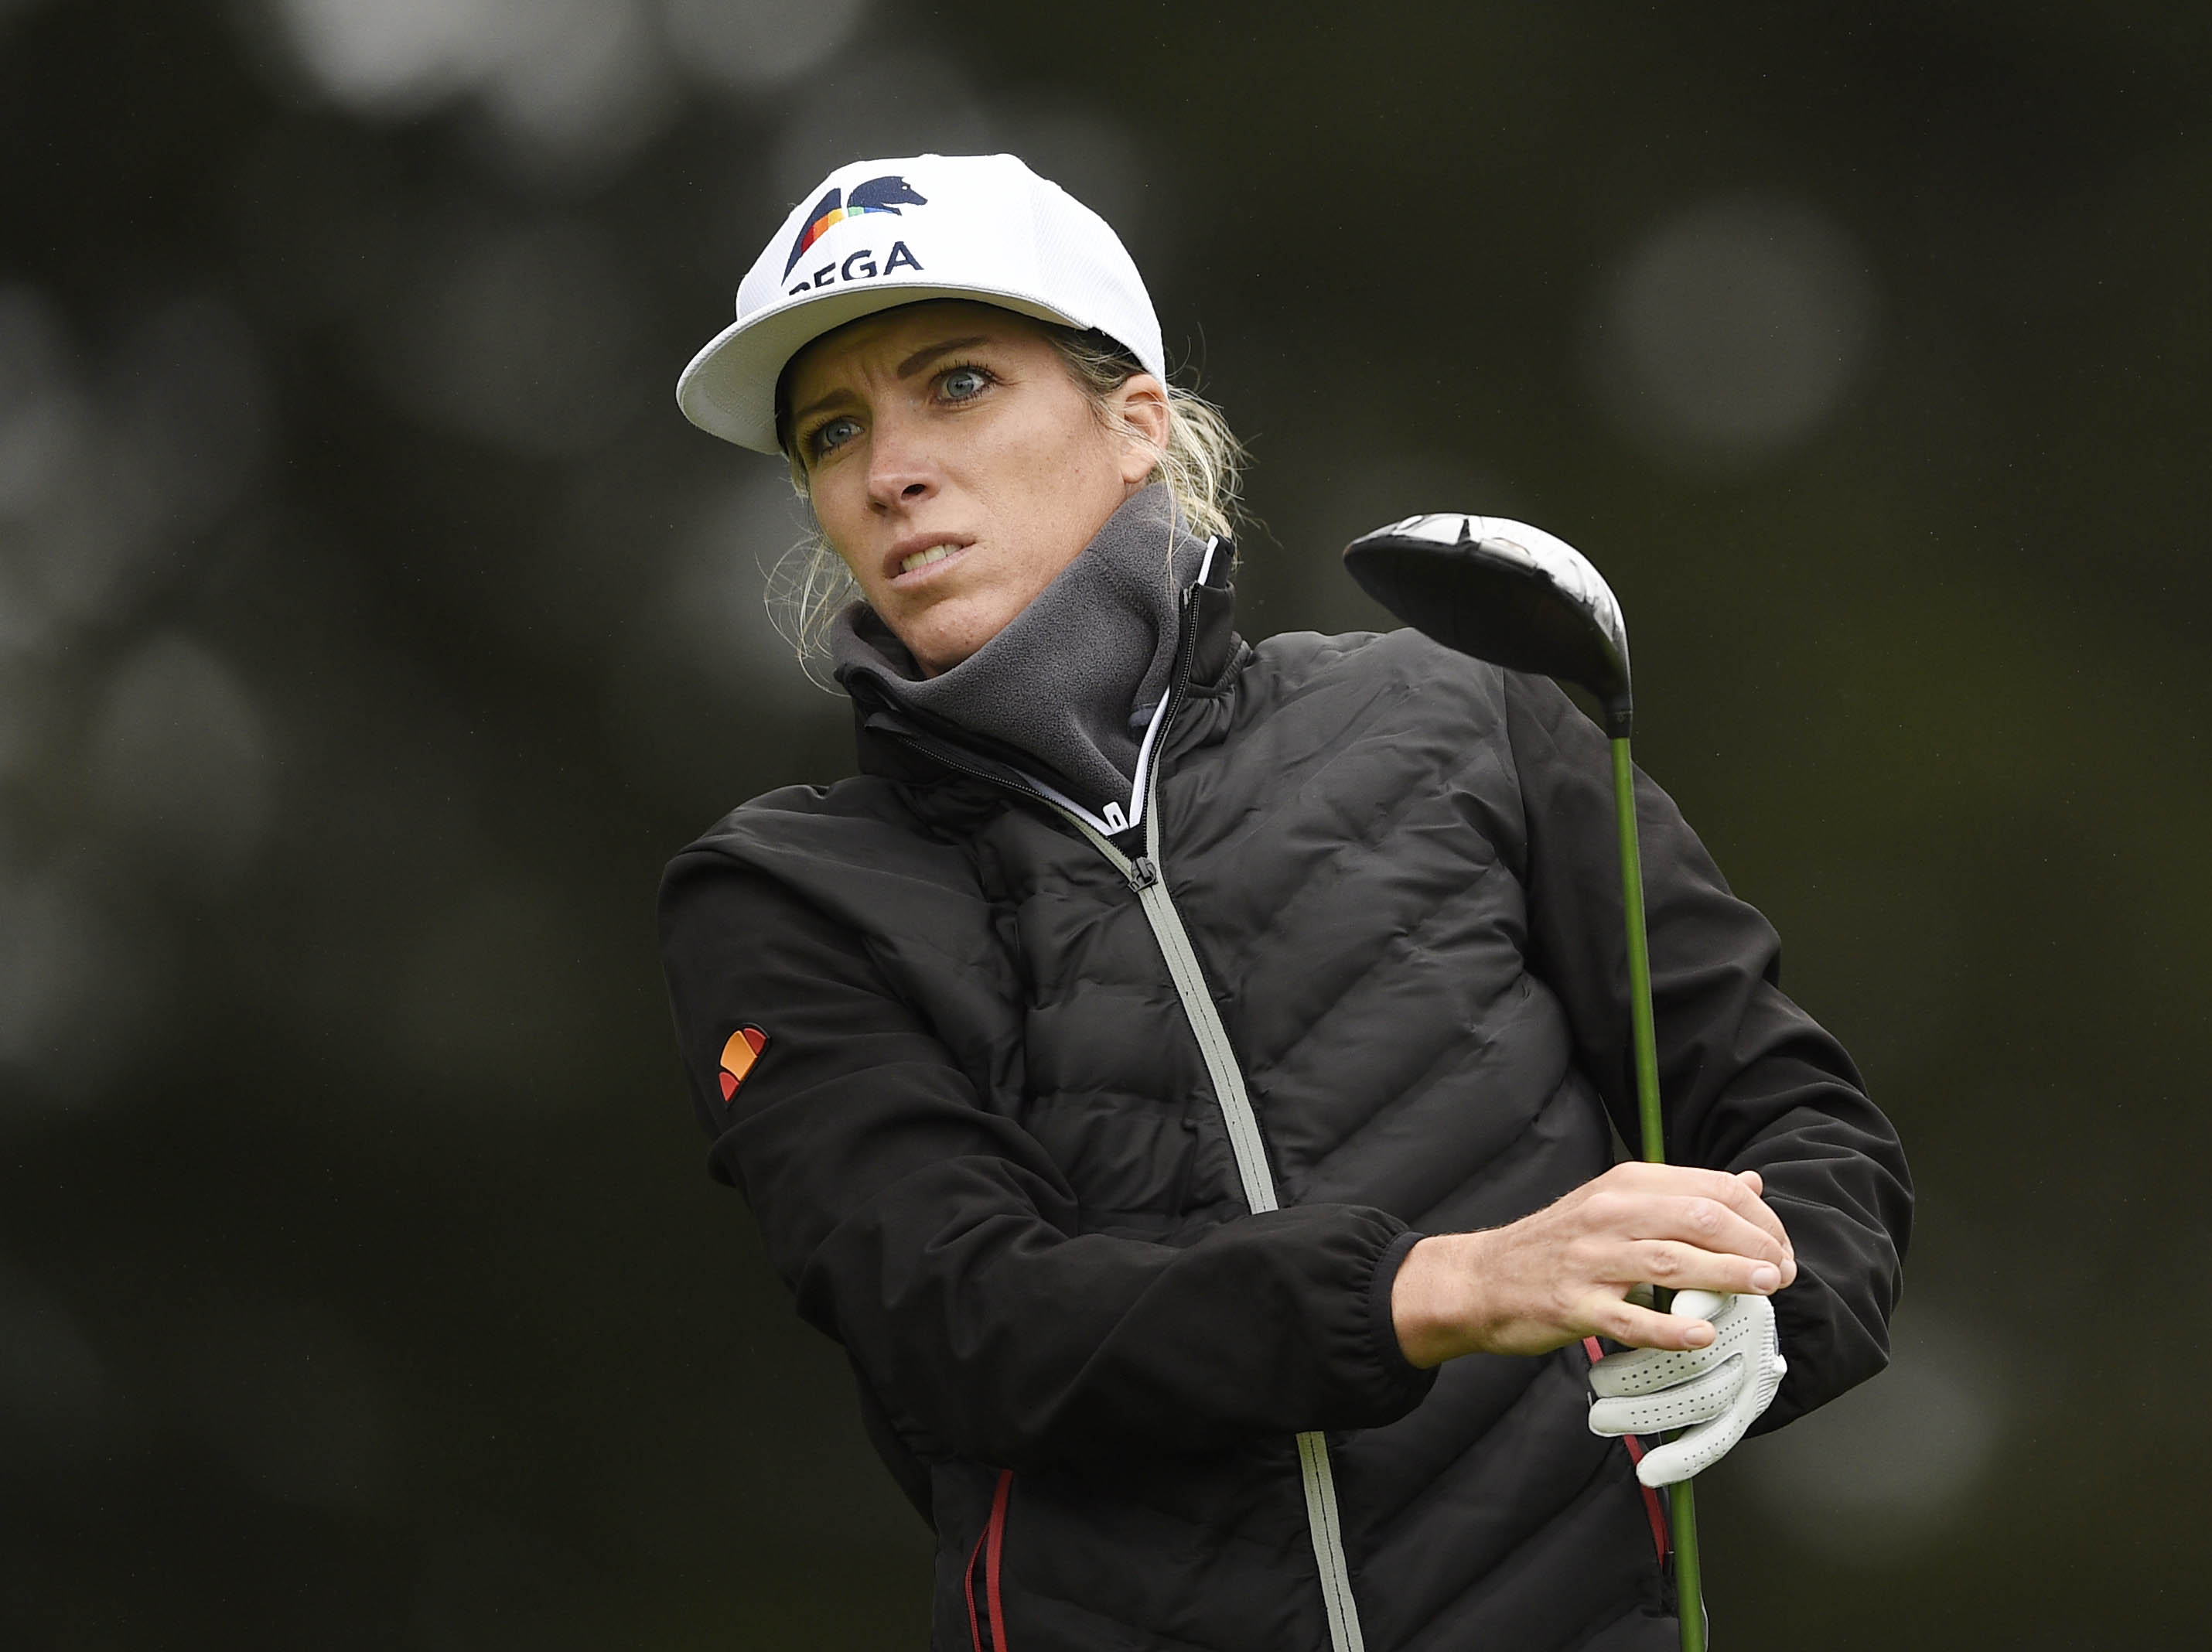 Jun 3, 2021; San Francisco, California, USA; Mel Reid hits her tee shot on the 10th hole during the first round of the U.S. Women's Open golf tournament at The Olympic Club. Mandatory Credit: Kelvin Kuo-USA TODAY Sports